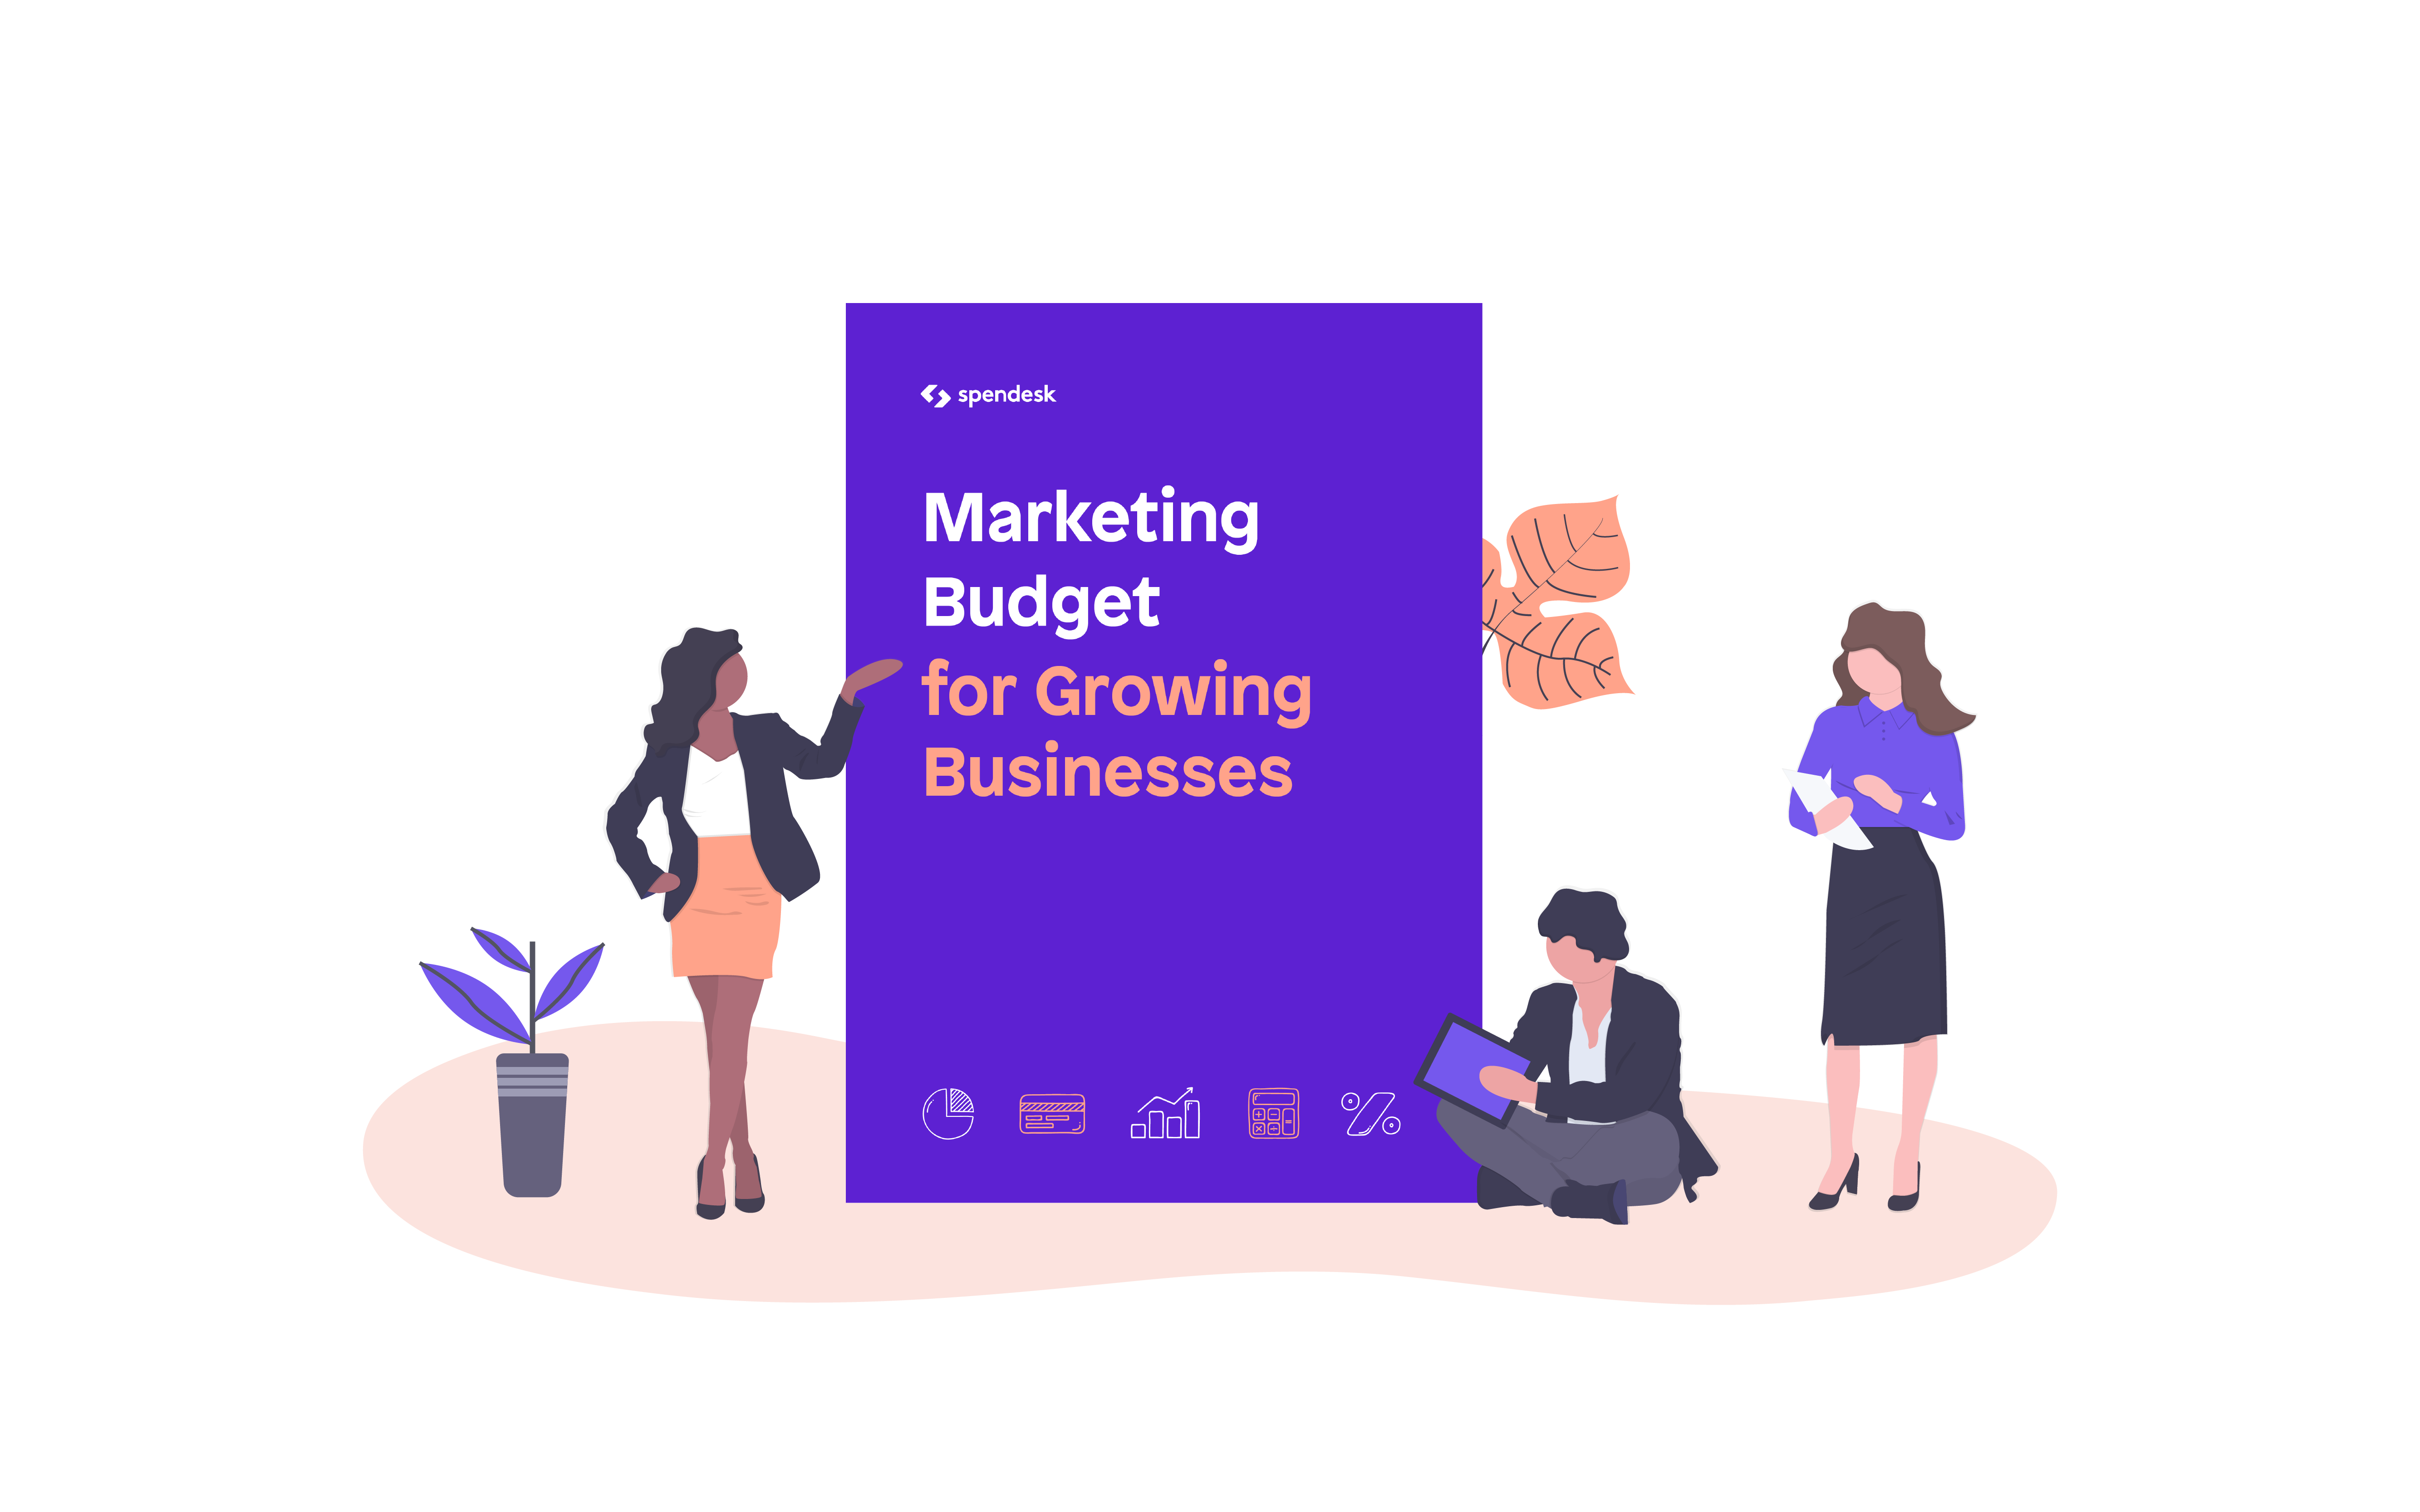 Marketing Budget for growing businesses